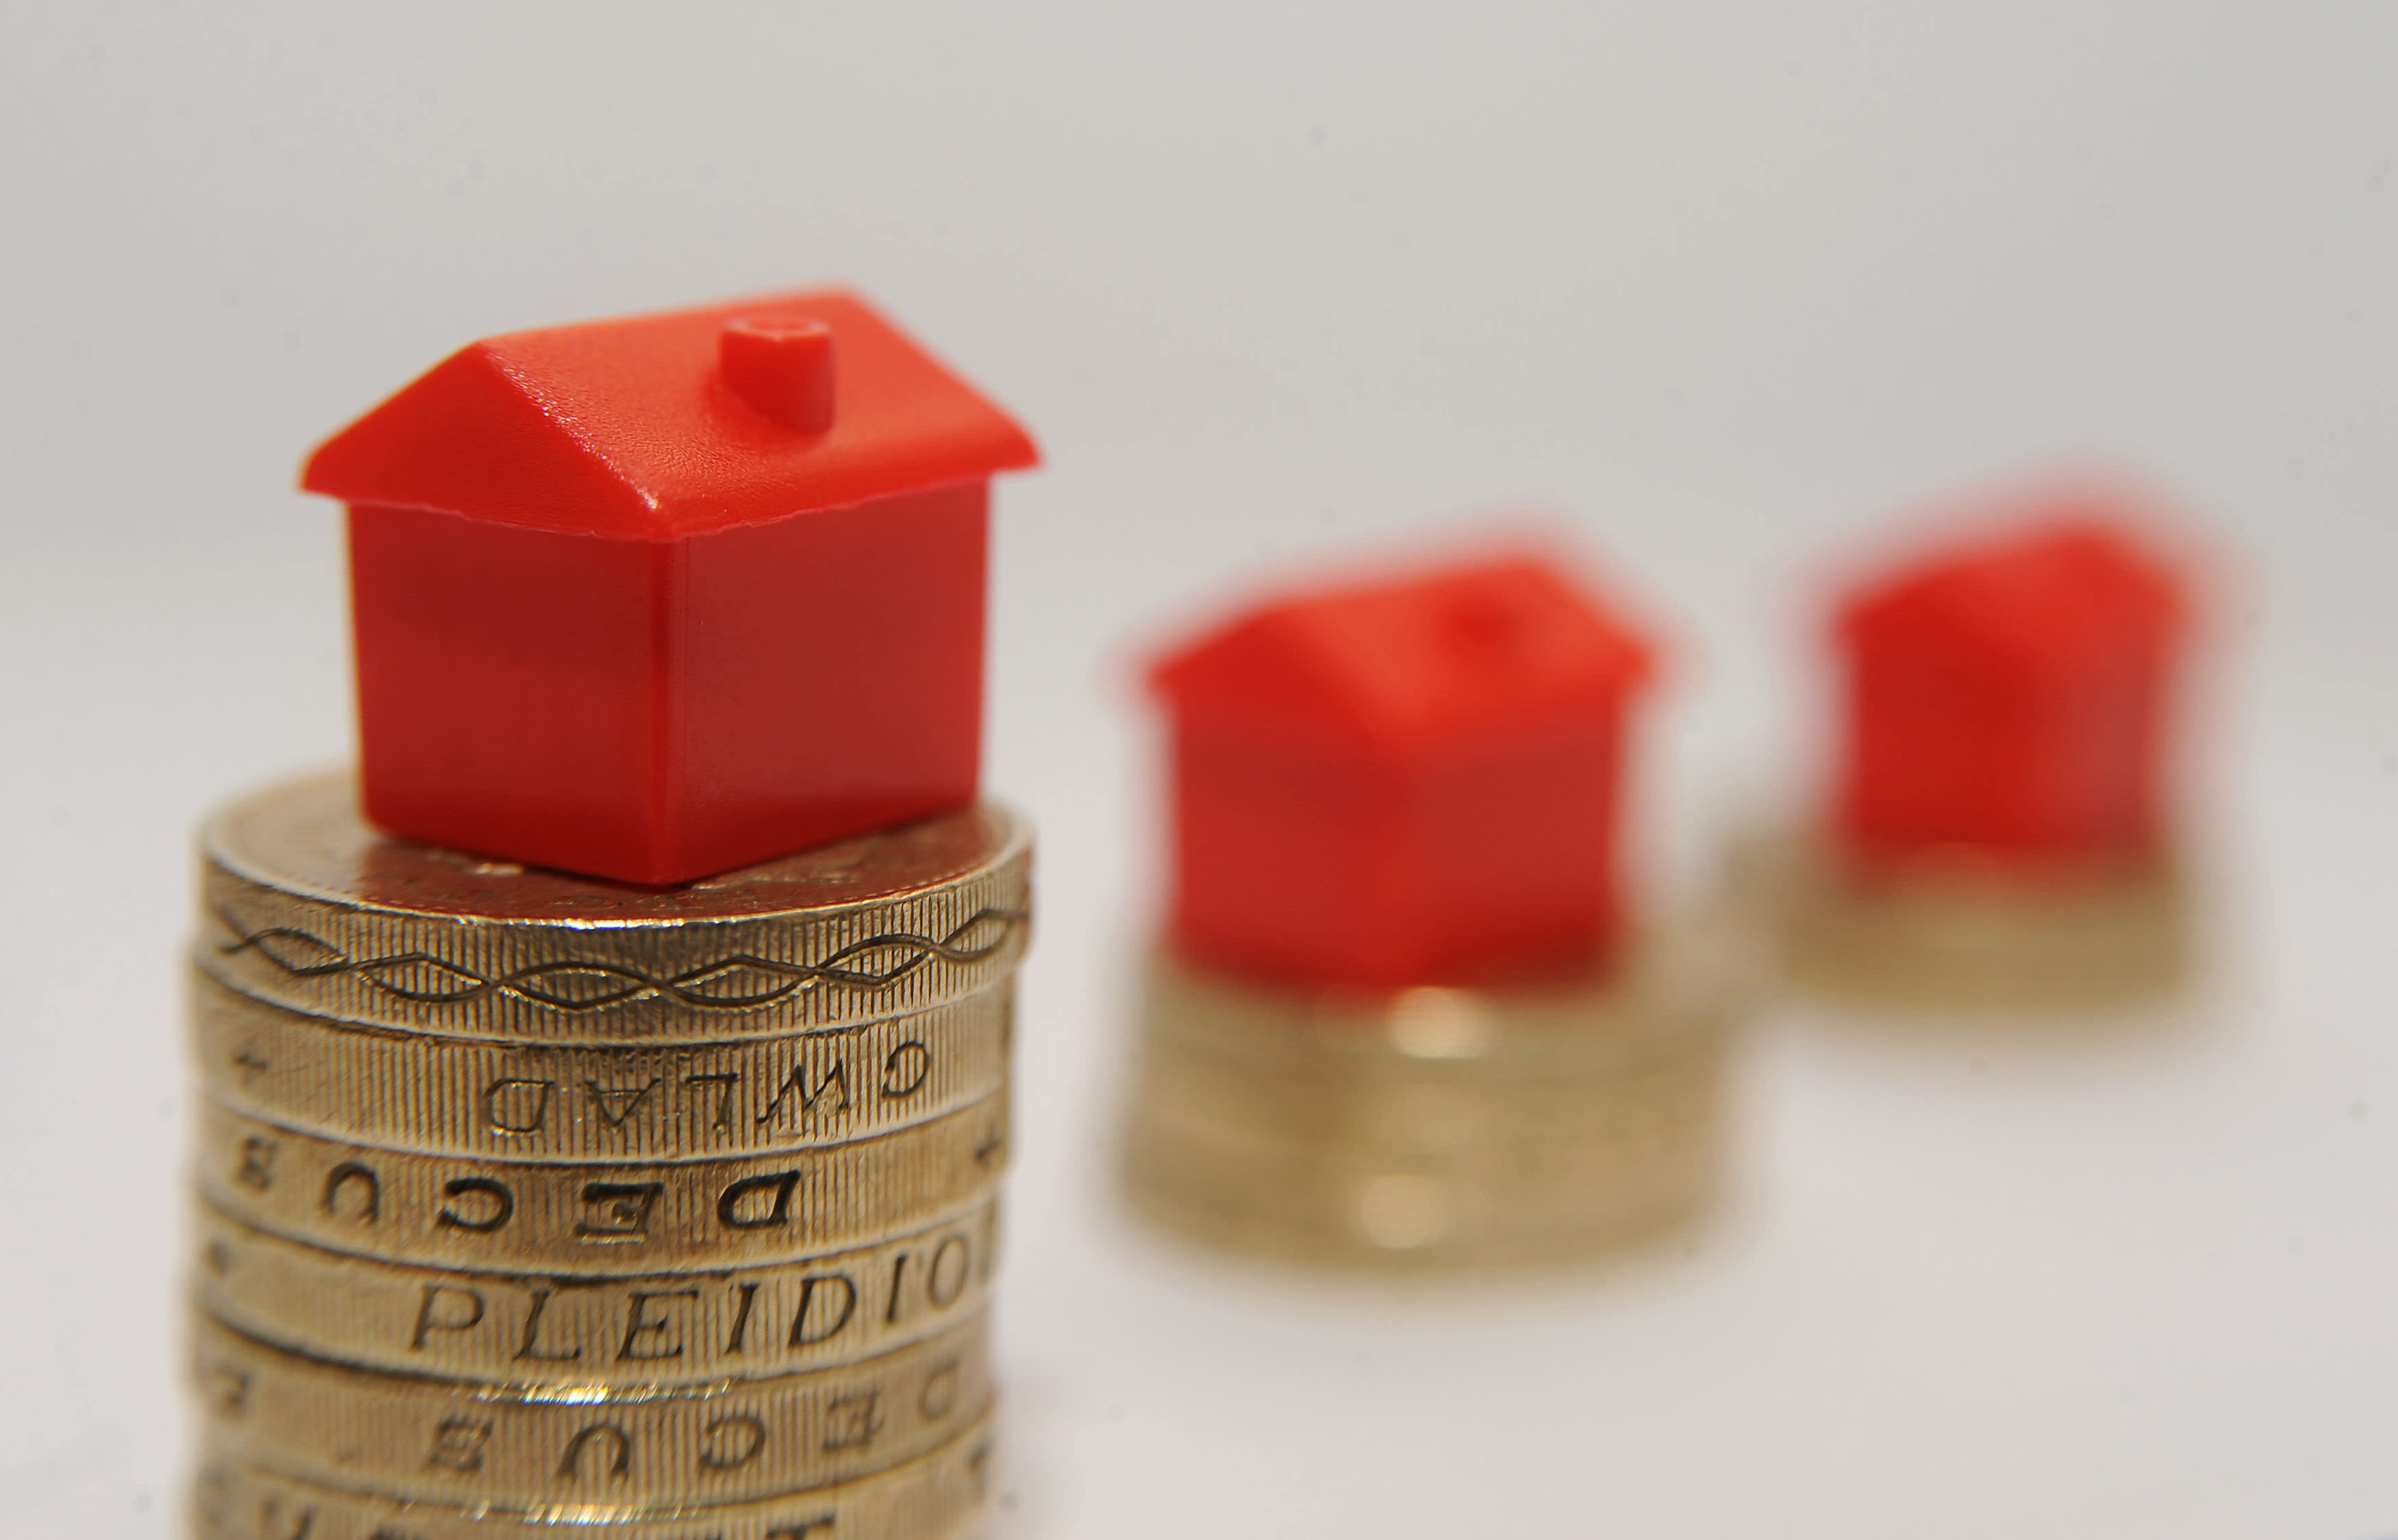 Planning law changes present opportunity for pensions